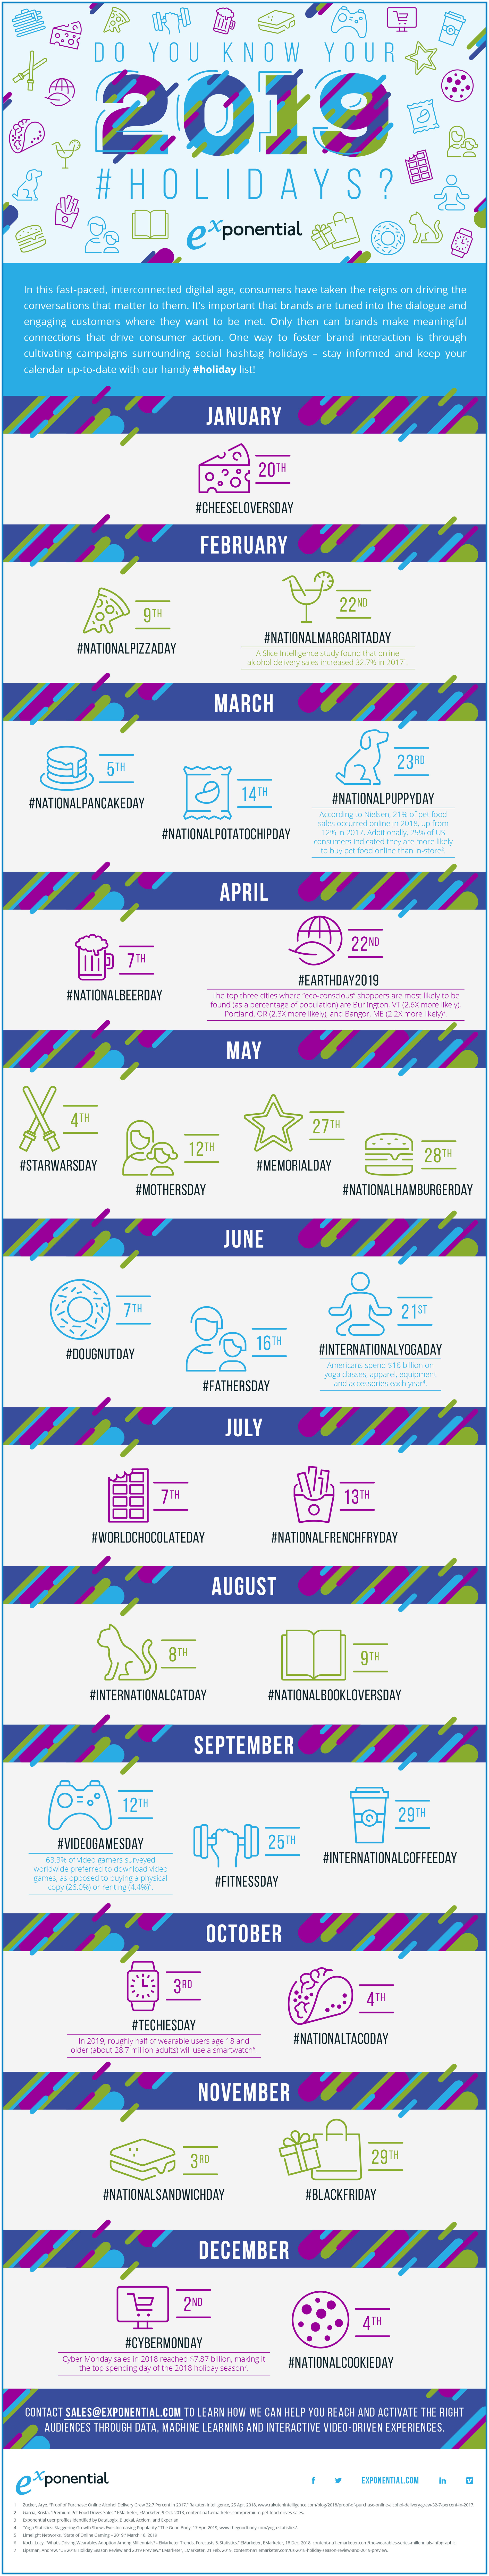 EXP_National-Holidays_Infographic_Web